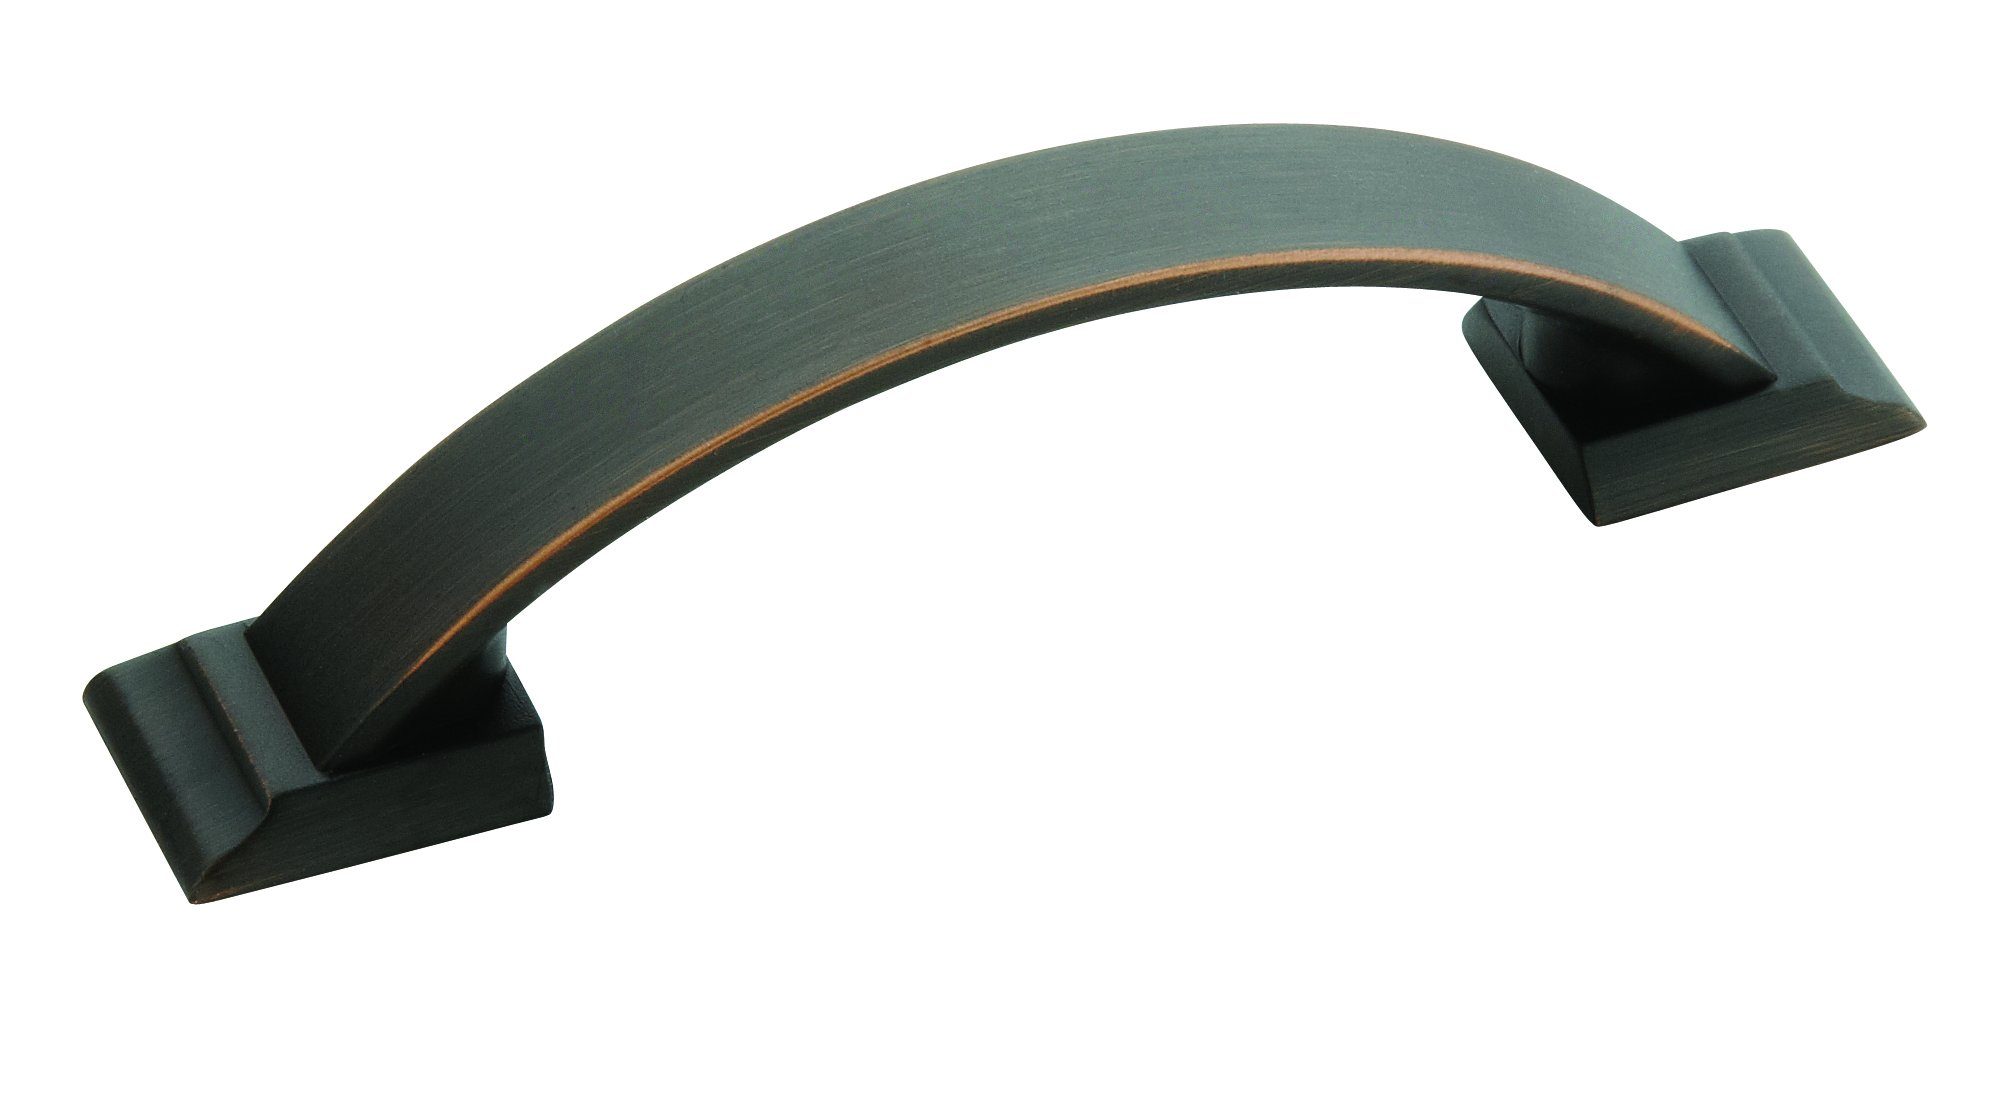 Amerock Candler 3 in (76 mm) Center-to-Center Oil-Rubbed Bronze Cabinet Pull - 10 Pack